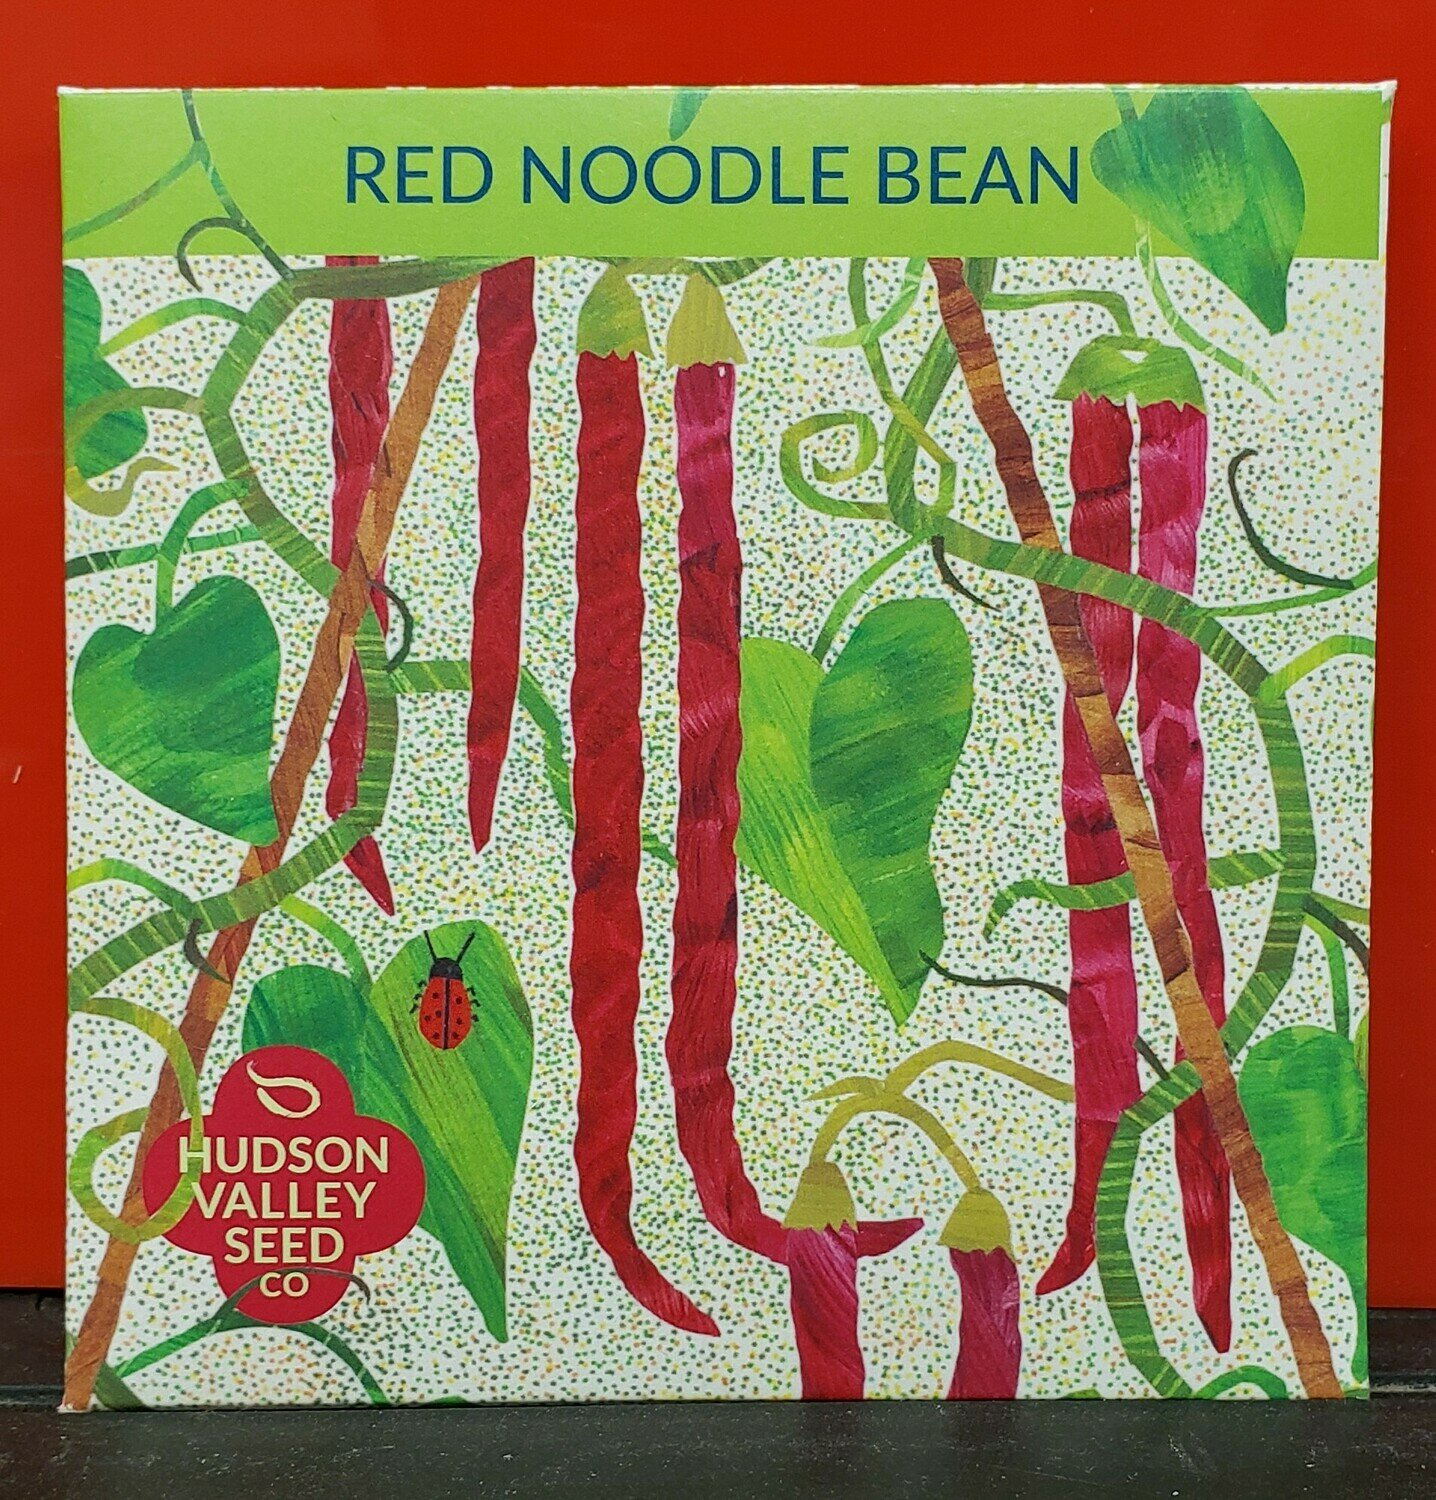 Art Pack Seeds: Bean, Yard Long (Red Noodle)